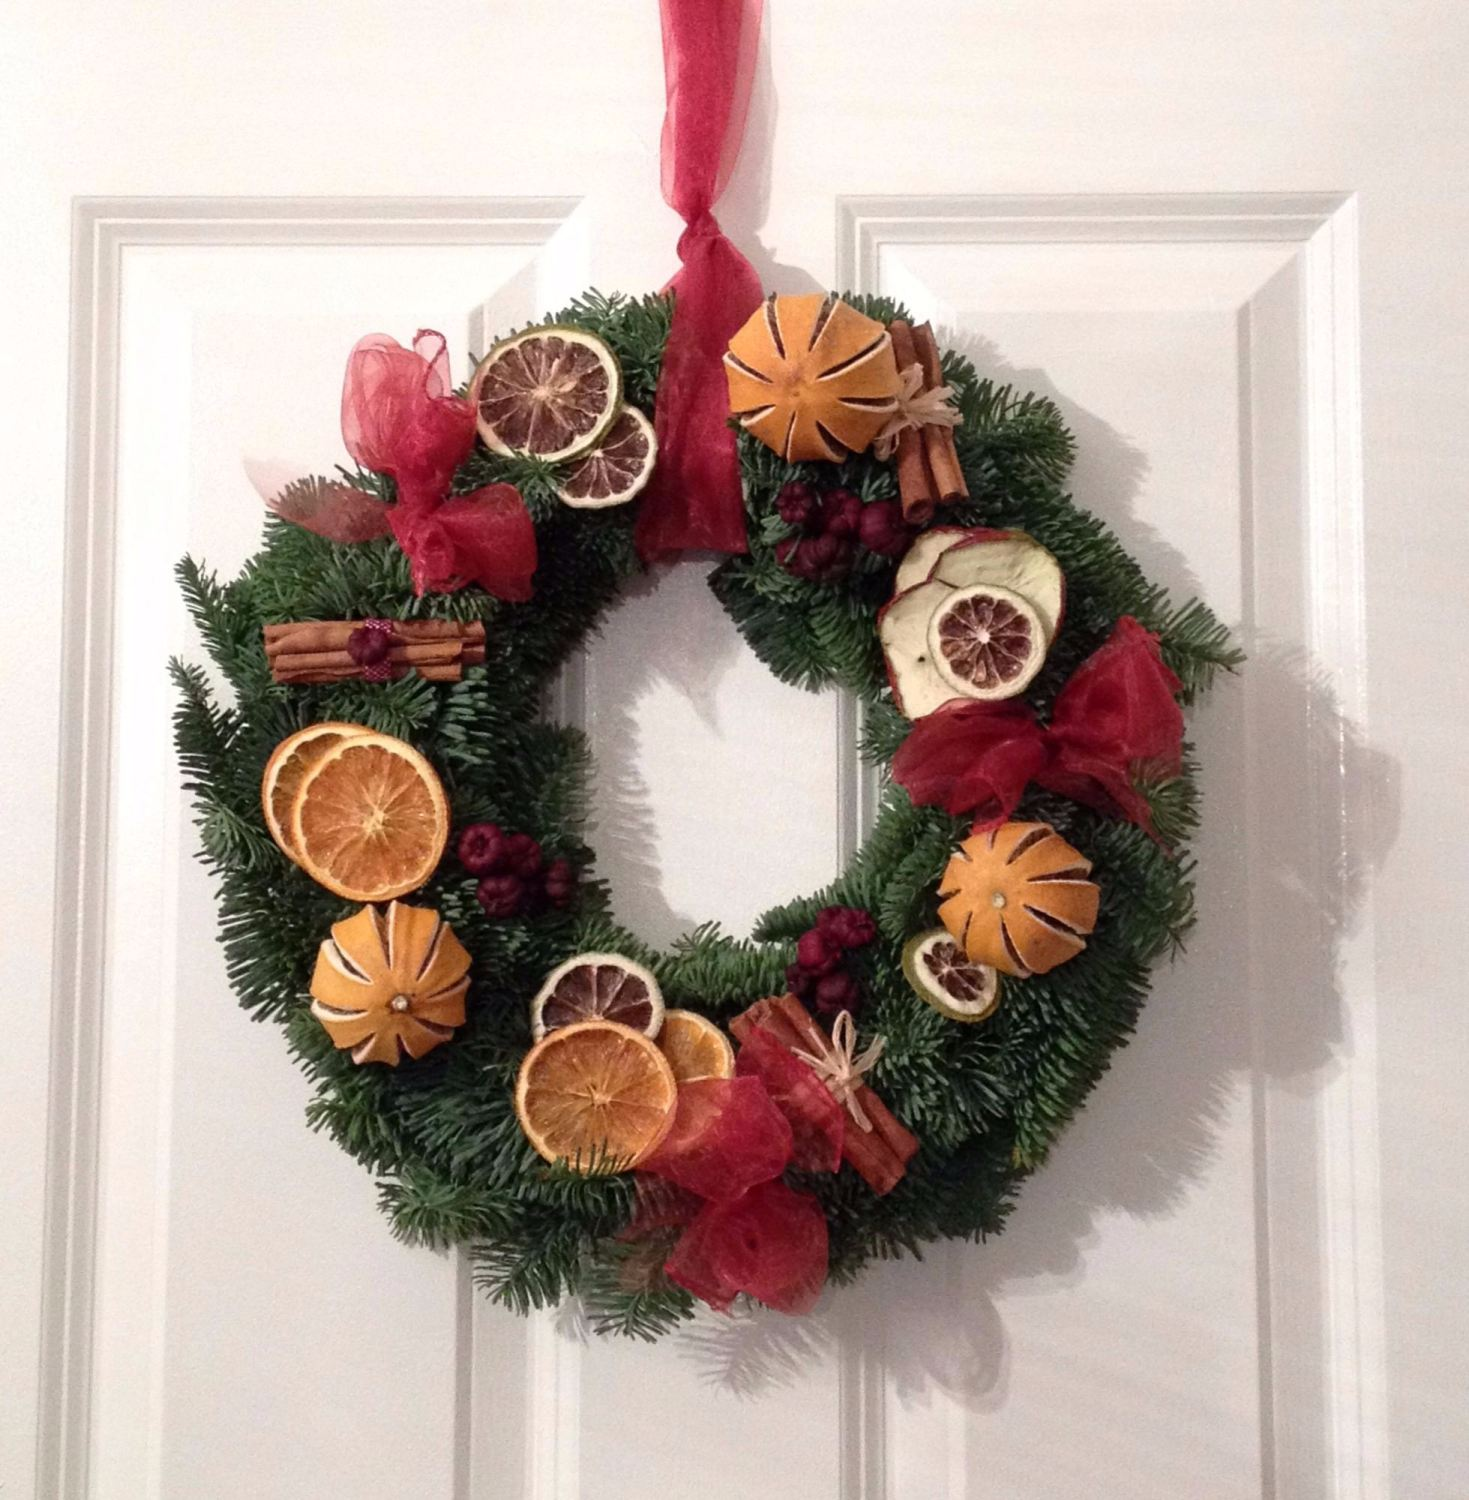 Fresh Christmas Wreaths.Traditional Fresh Christmas Wreath From 19 00 With Free Local Delivery